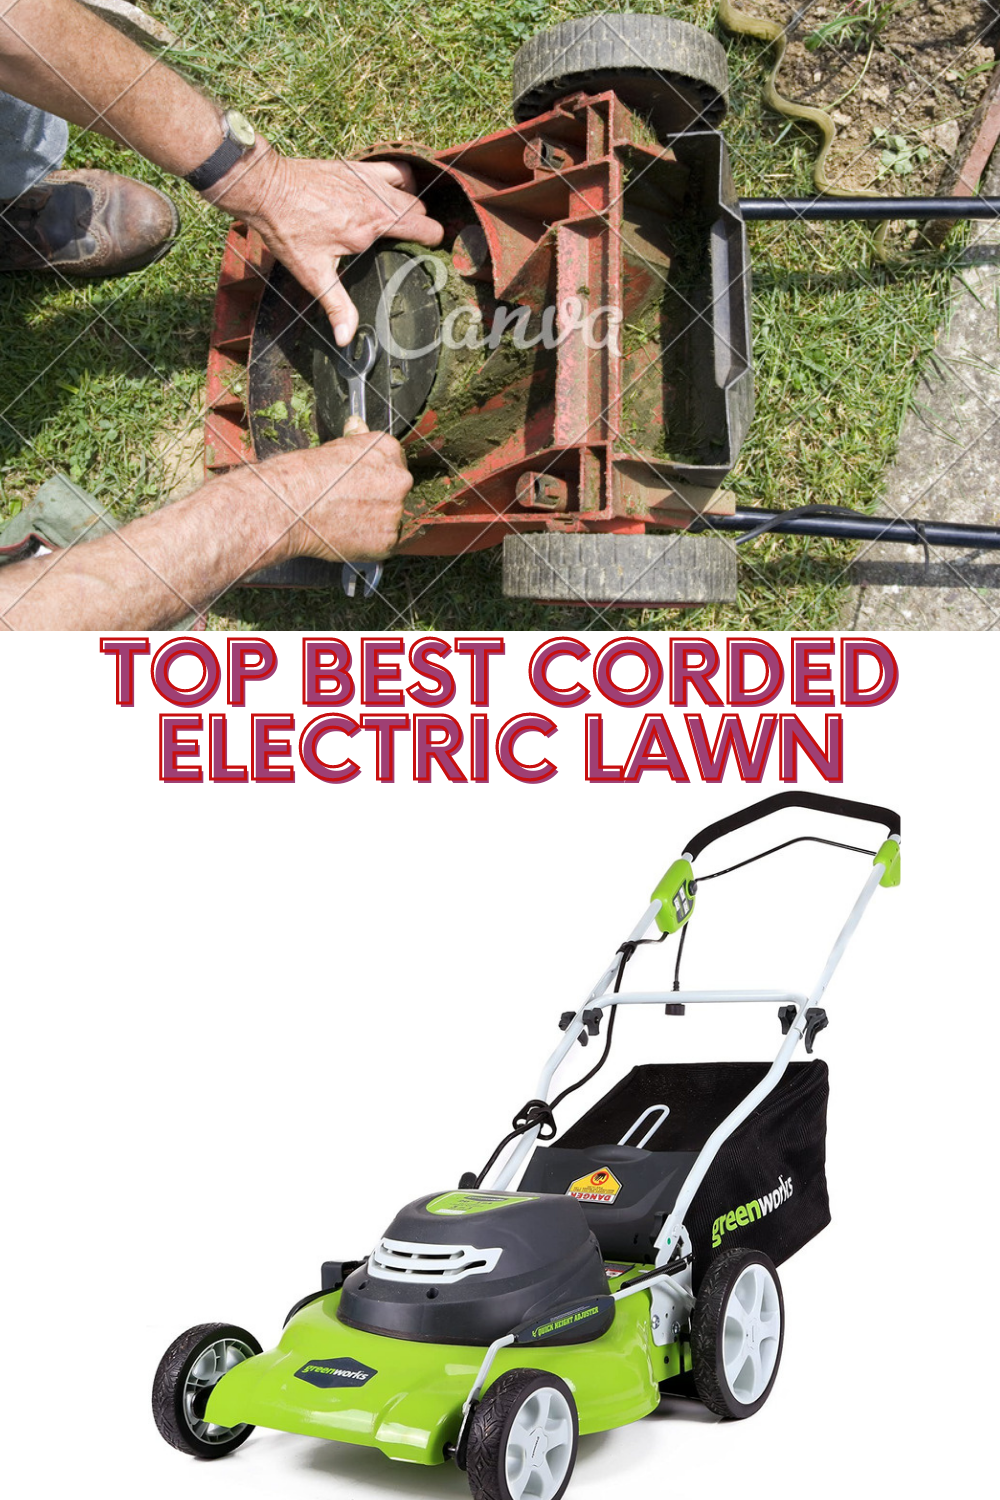 Top Best Corded Electric Lawn Mower Of 2020 Edger Lawn Mower In 2020 Steel Deck Push Lawn Mower Lawn Mower